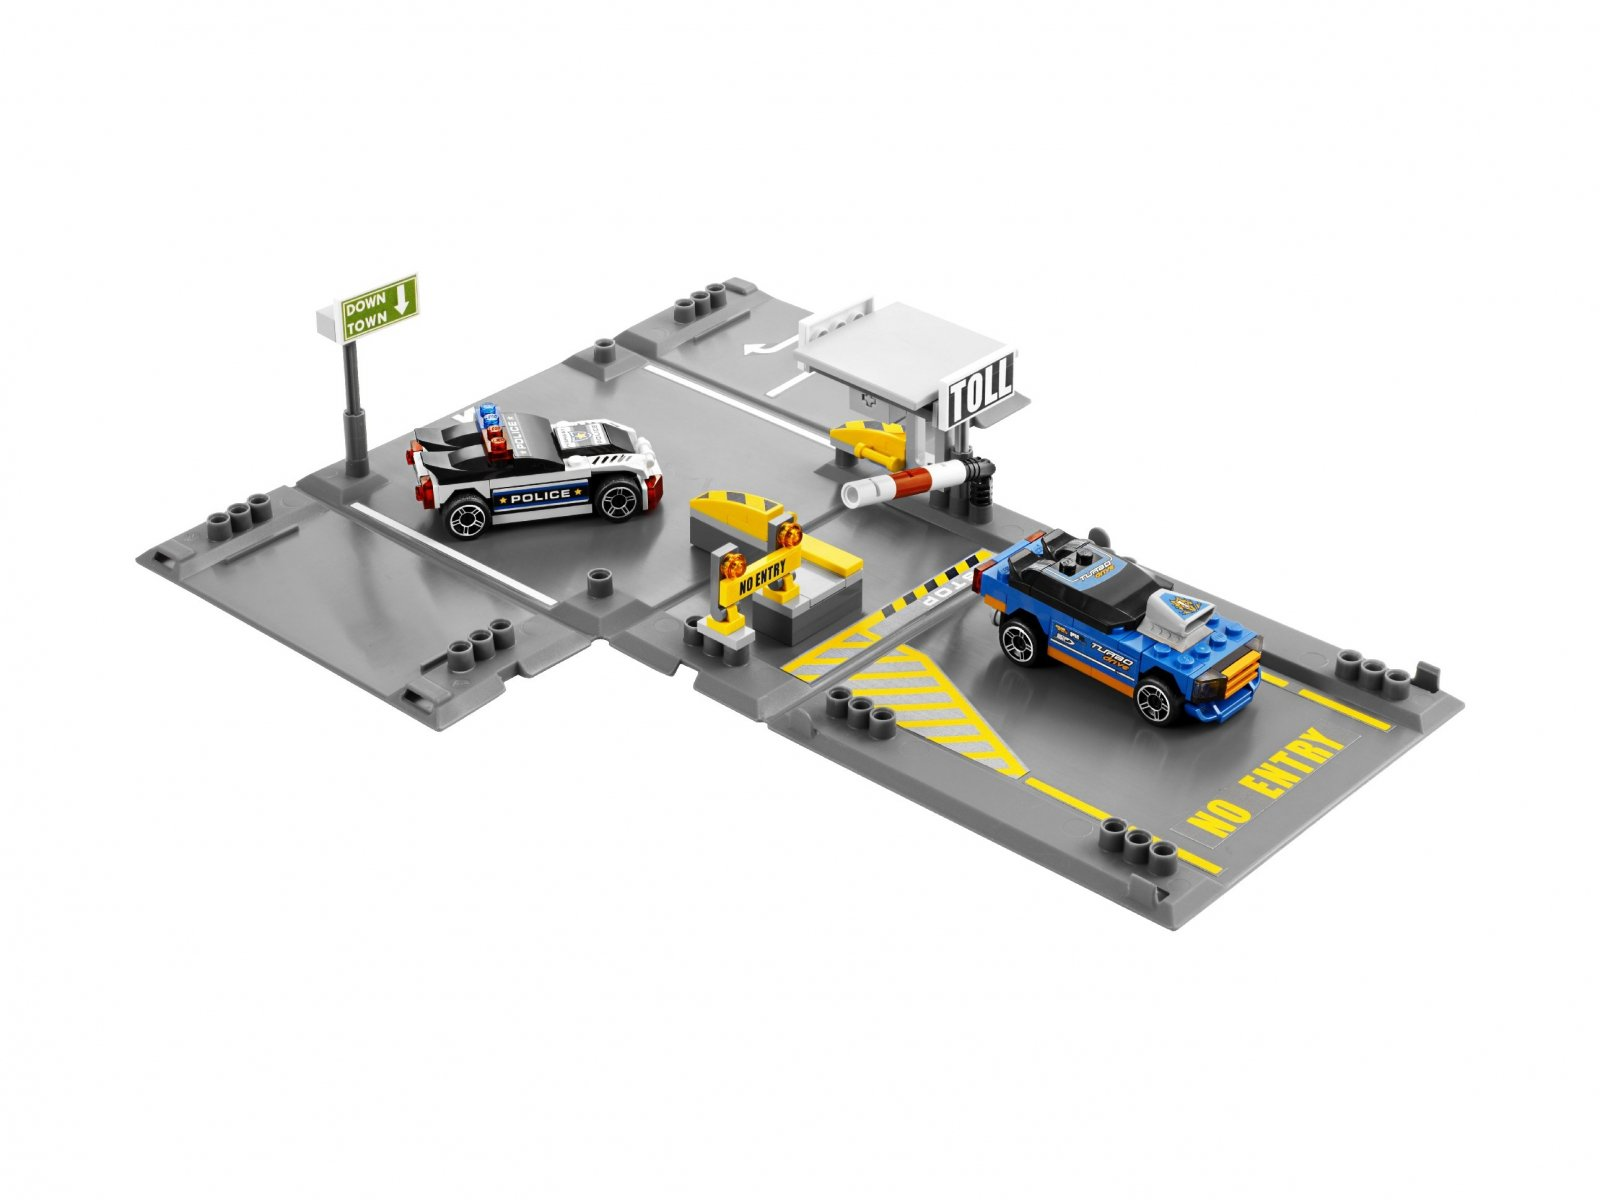 LEGO Racers Chaos na autostradzie 8197